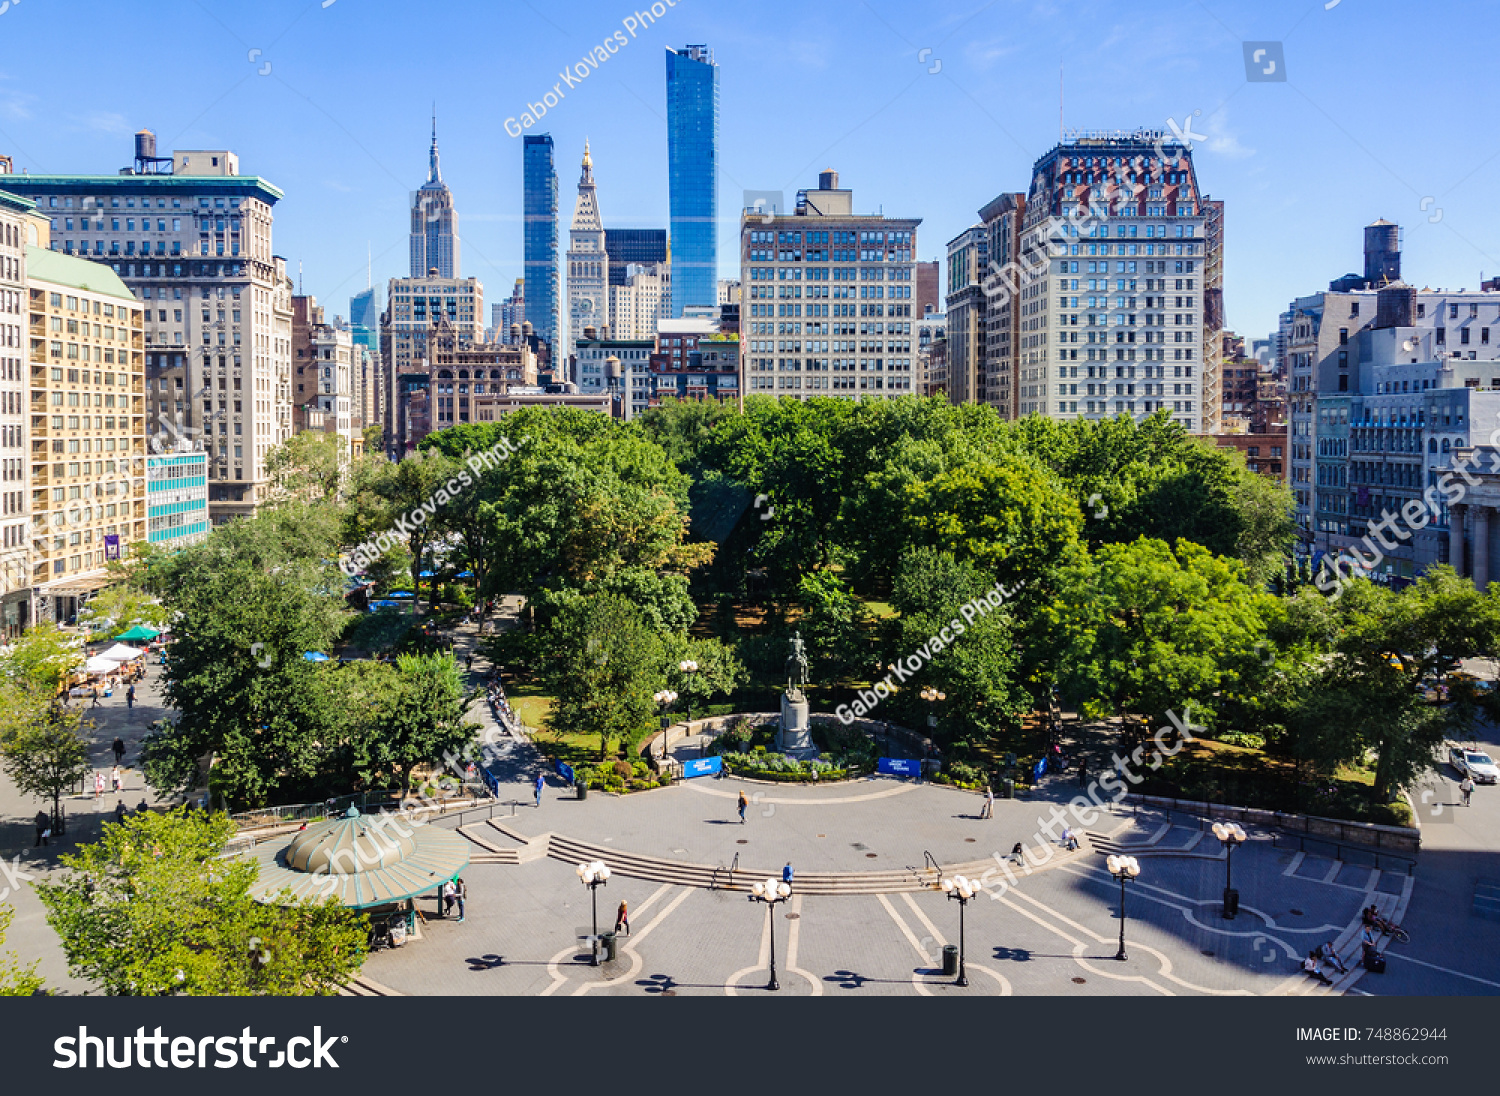 View of Union Square from a shop, New York, USA #748862944